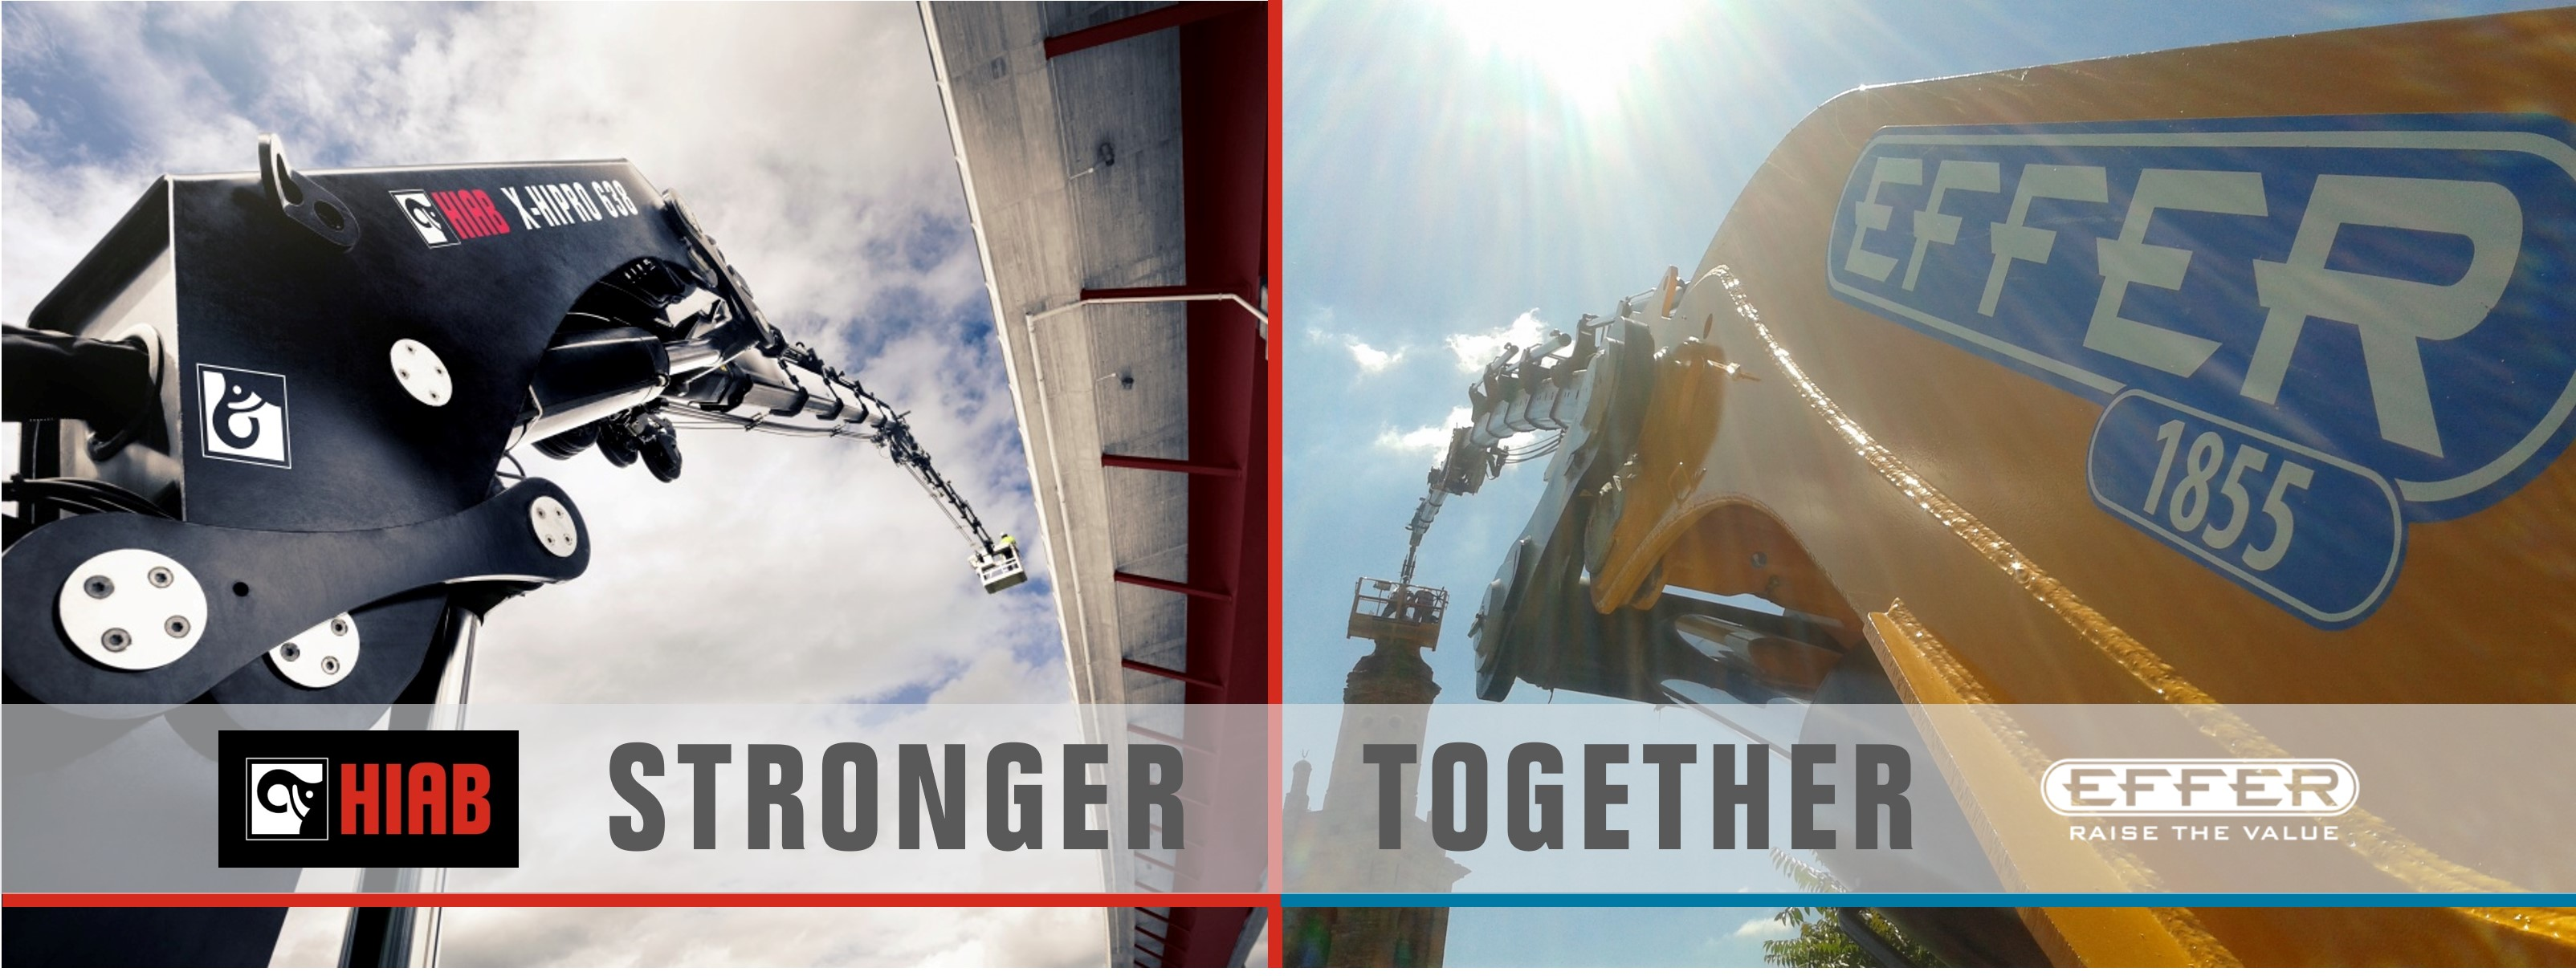 Hiab-Effer_Stronger Together_Signature